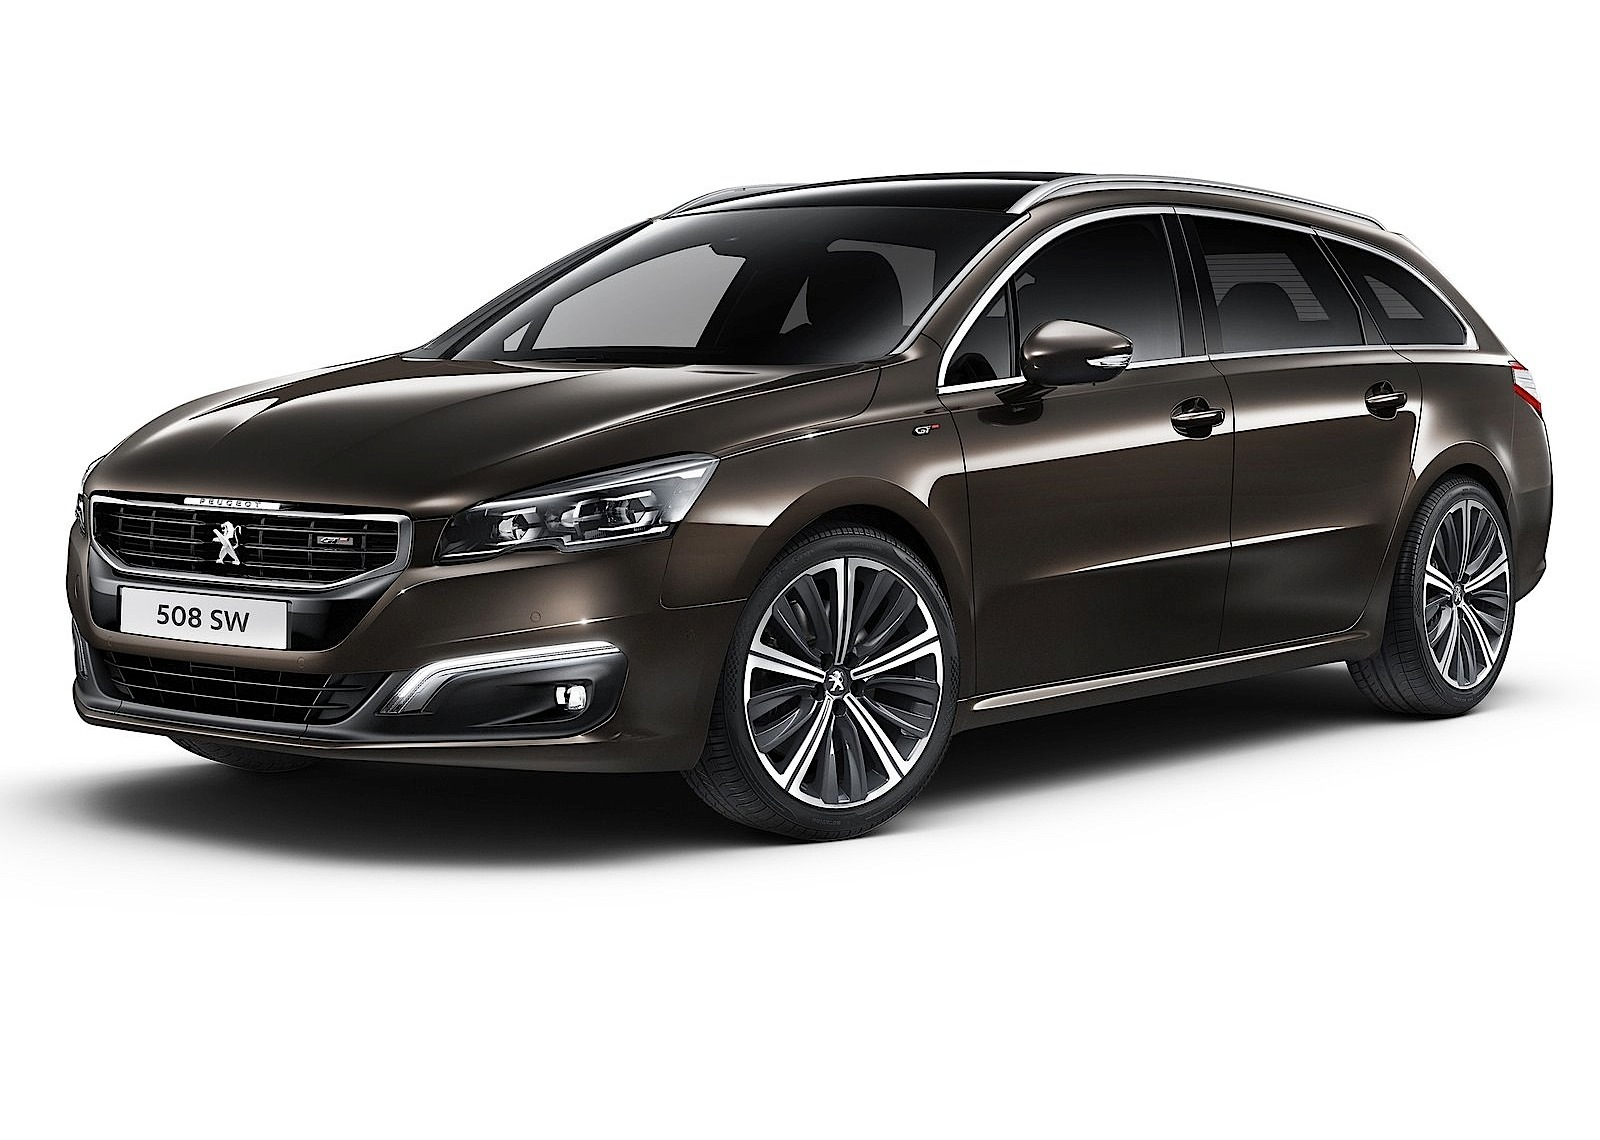 peugeot 508 sw specs 2014 2015 2016 2017 2018 autoevolution. Black Bedroom Furniture Sets. Home Design Ideas